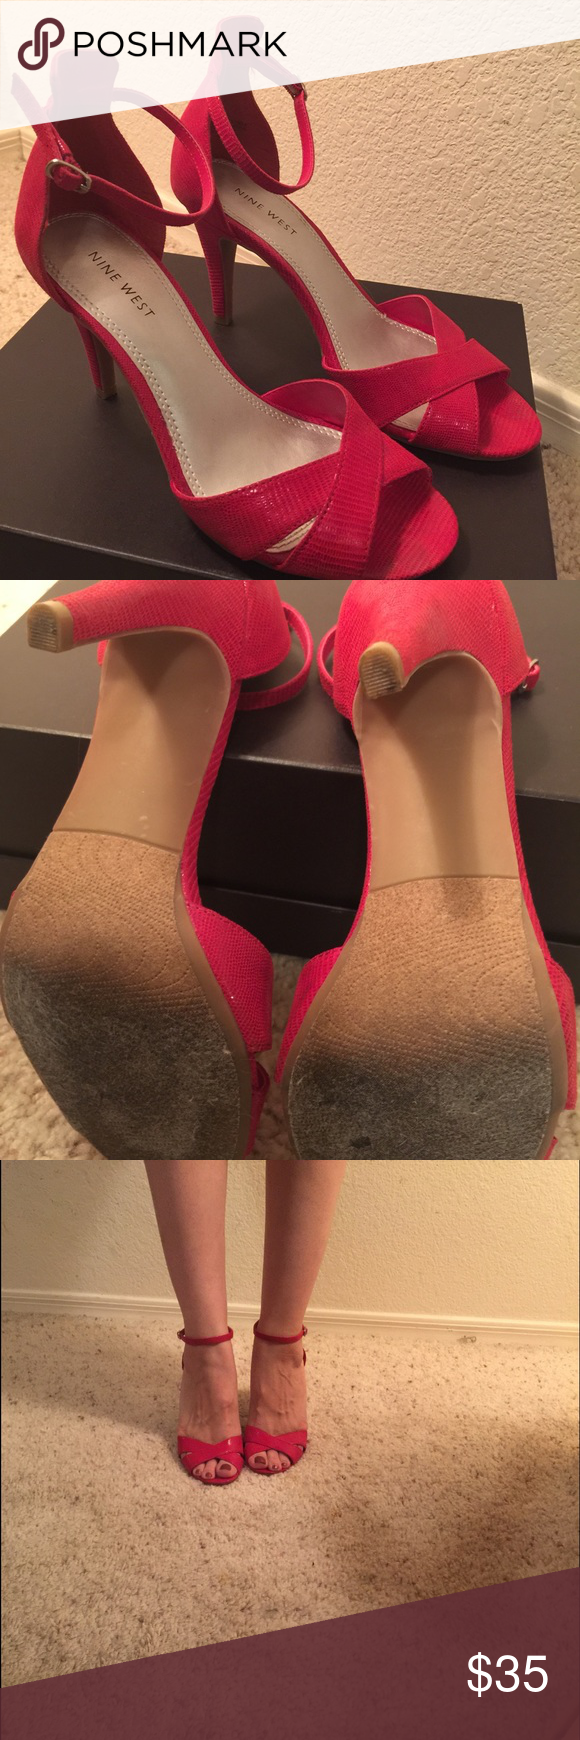 Nine West red ankle strap heels. Size 7. Nine West size 7 - ankle strap red heels. Only worn once - great condition, no scratches or nicks in the heels. Nine West Shoes Heels